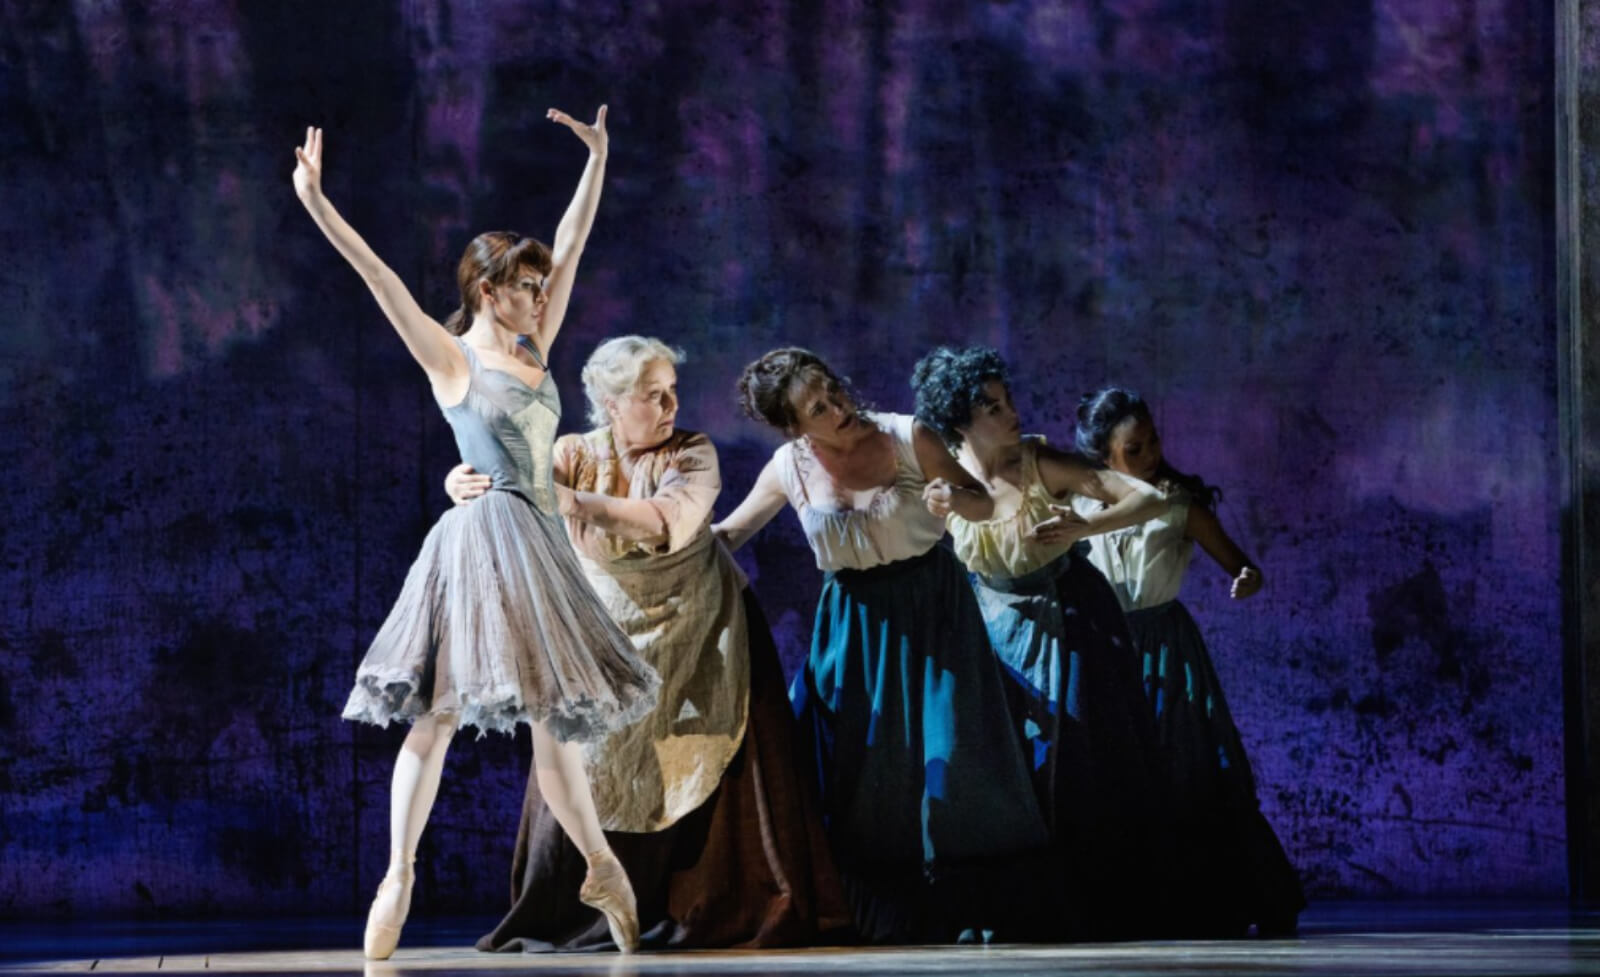 Marie (Tiler Peck) dancing with the laundresses in the musical Little Dancer.